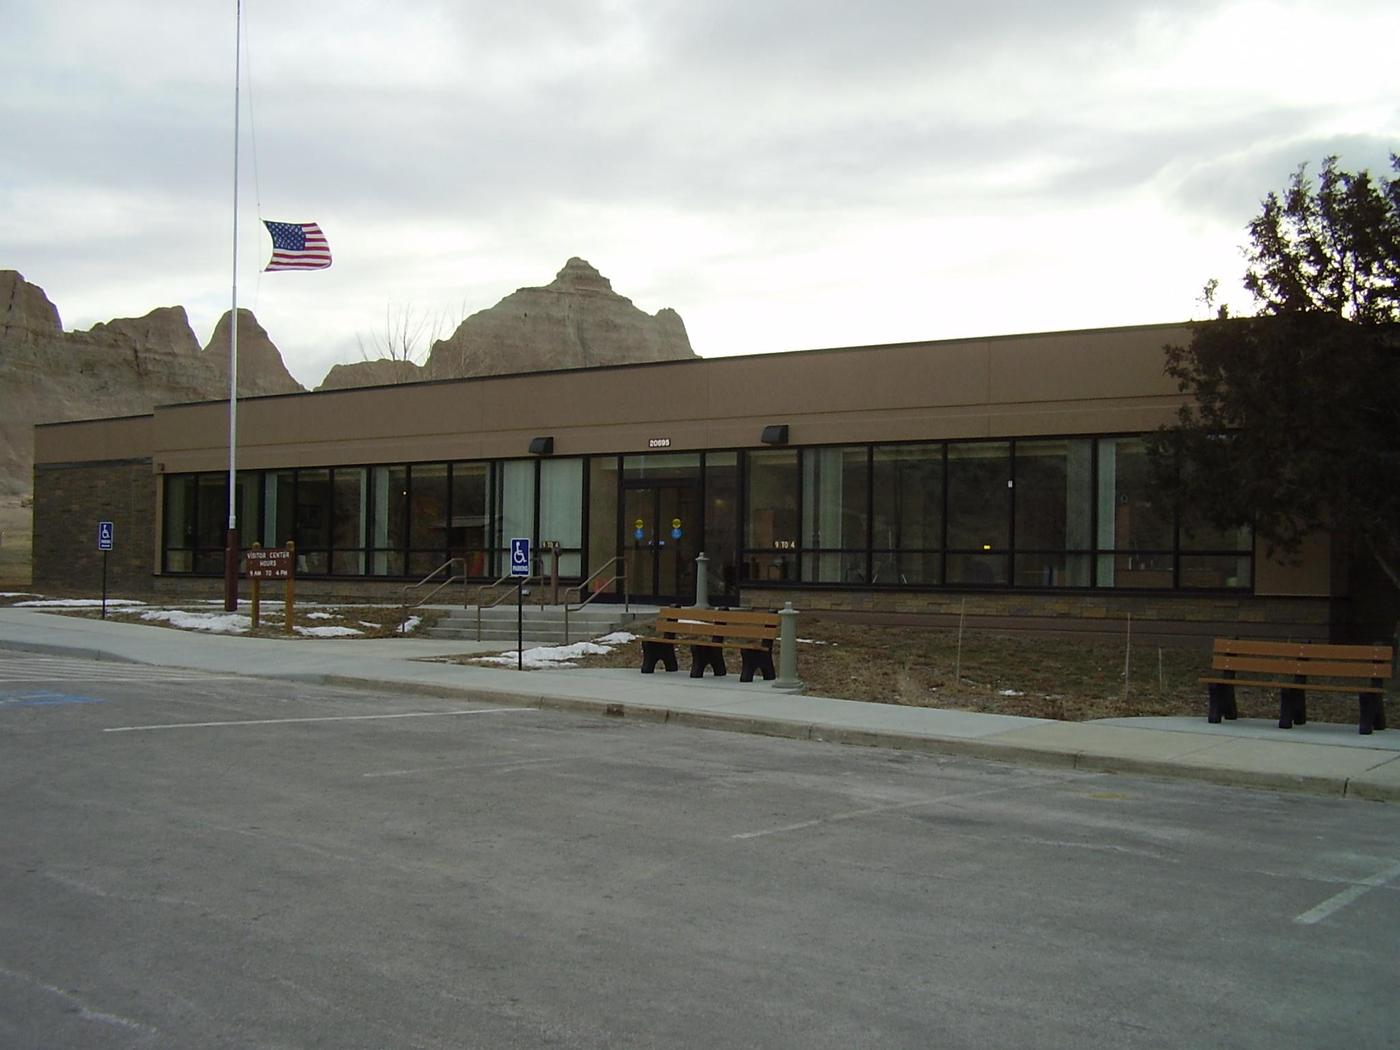 Ben Reifel Visitor Center 004The parking lot at the visitor center can accommodate most vehicles and has a large vehicle area.